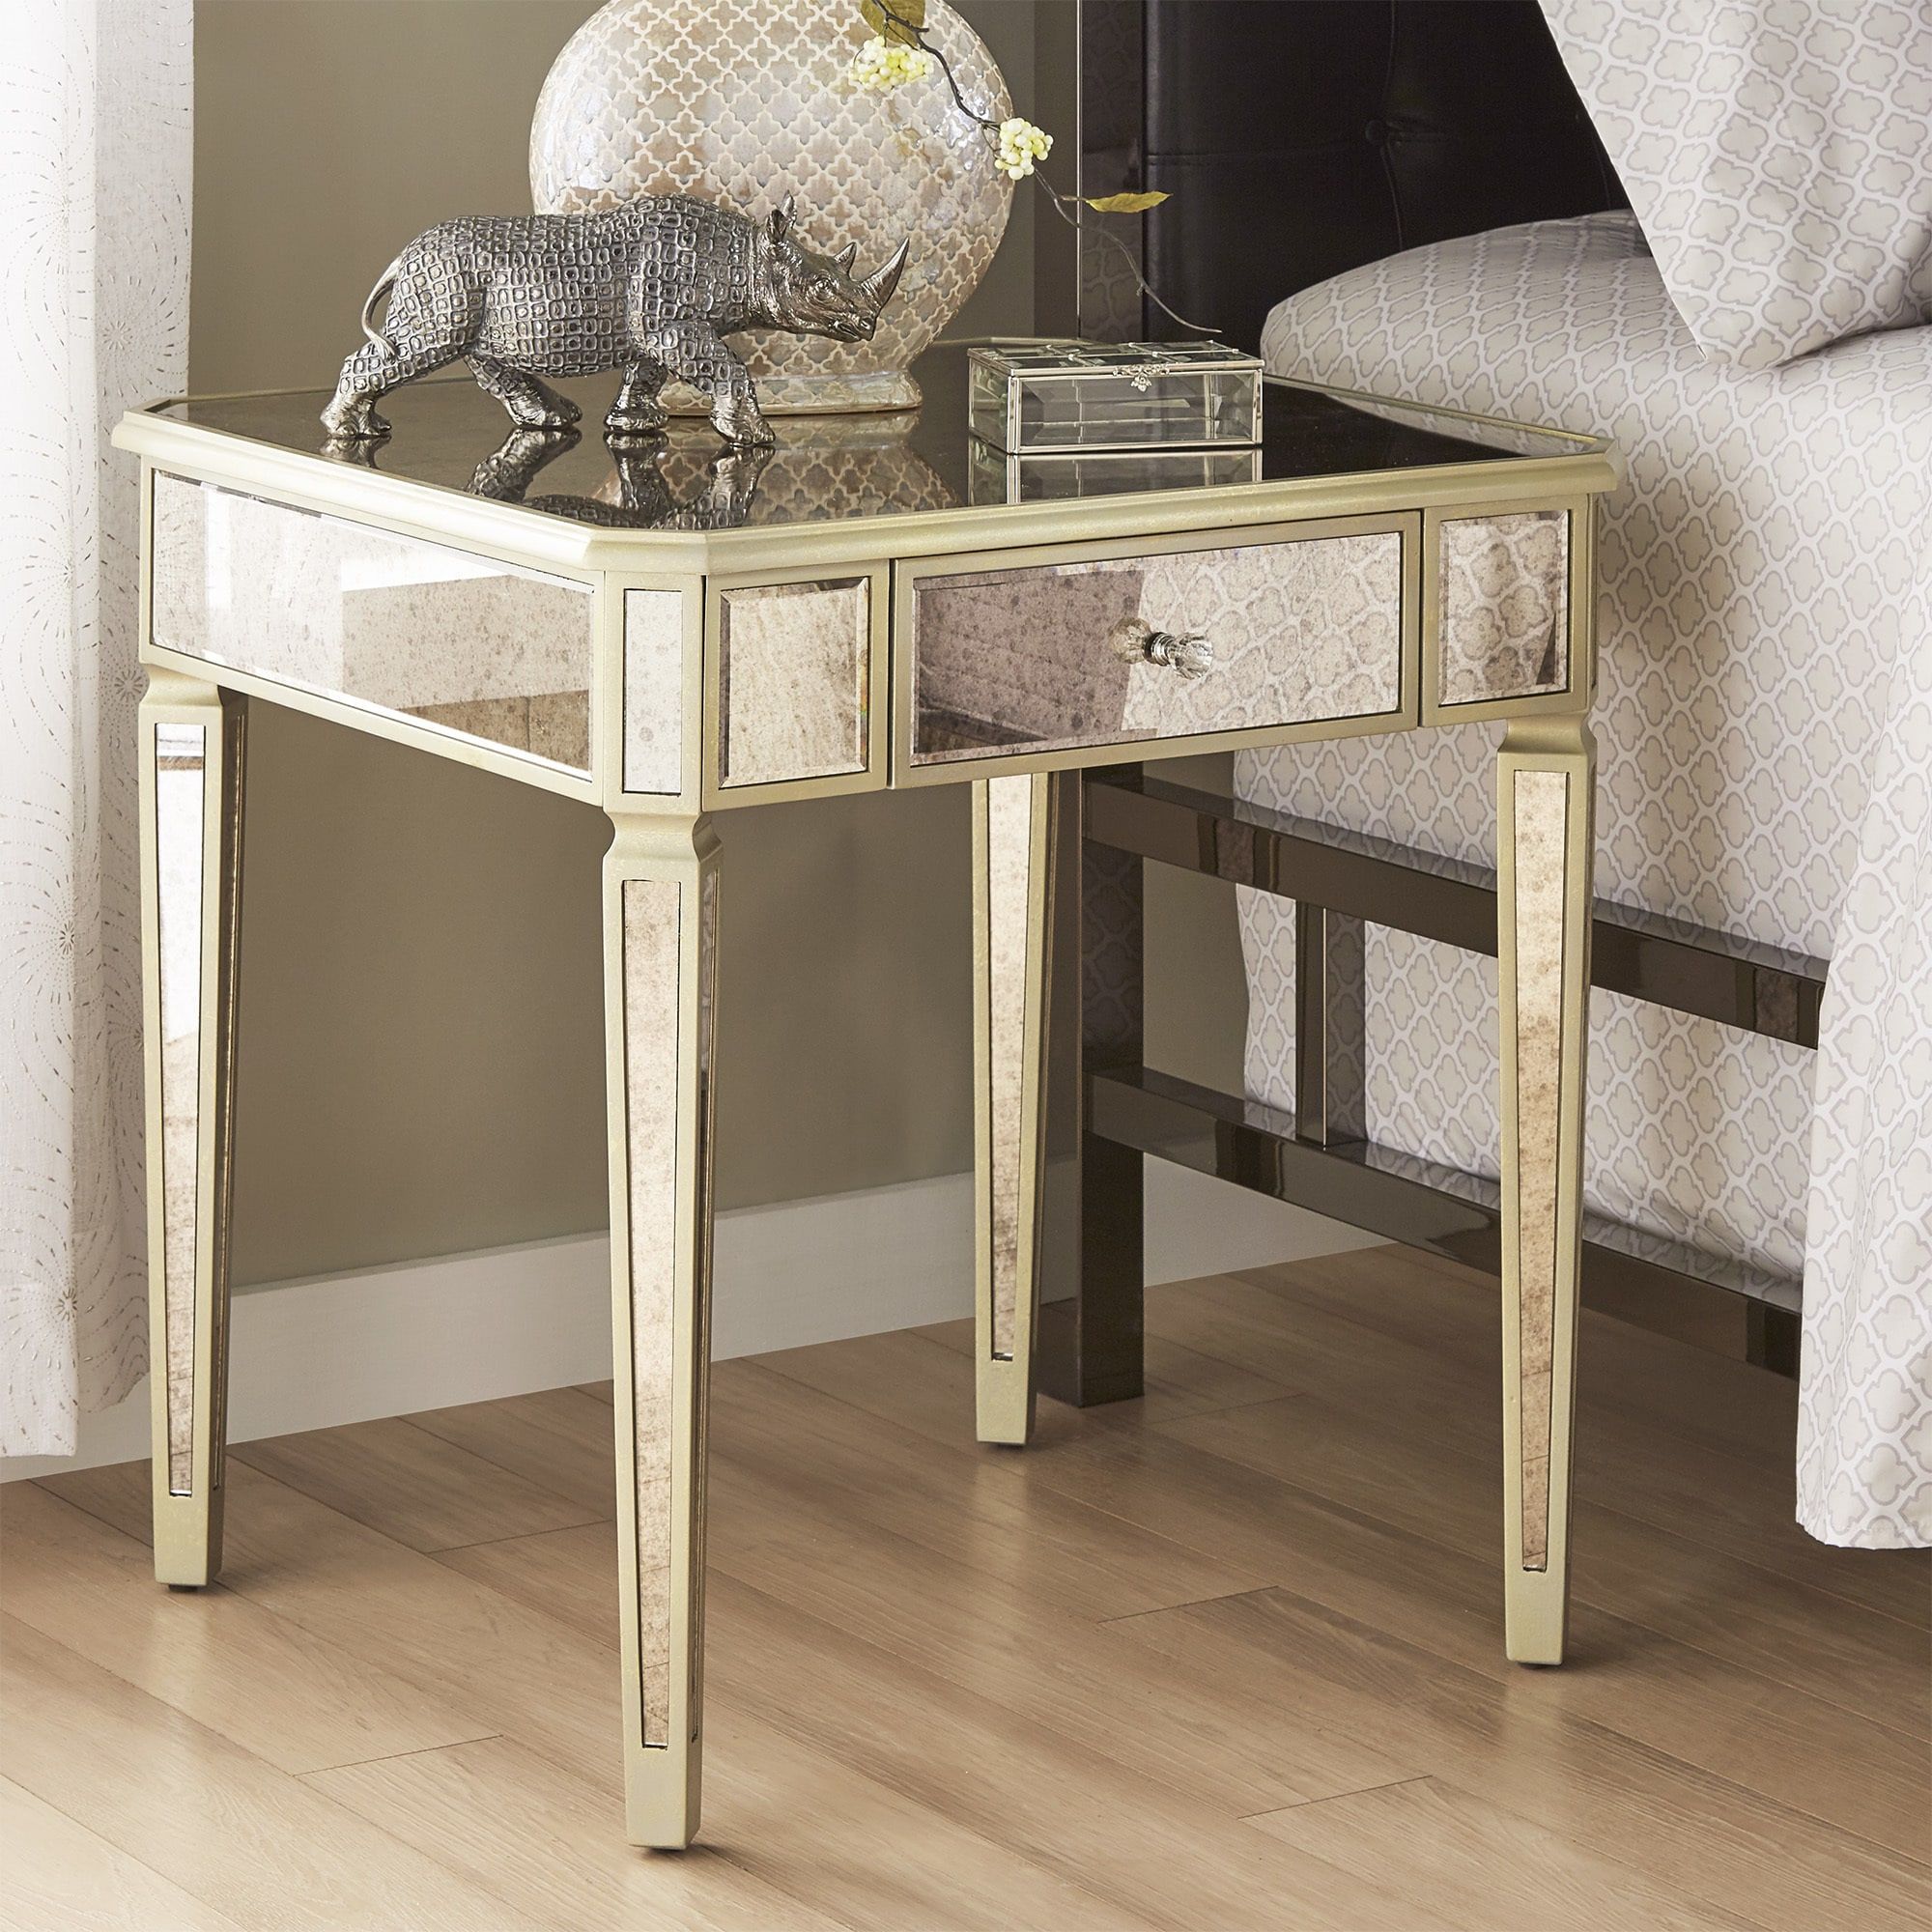 clara antique gold drawer mirrored end table inspire bold faceted accent with glass top free shipping today pineapple lights slim side furniture brass coffee normande lighting led